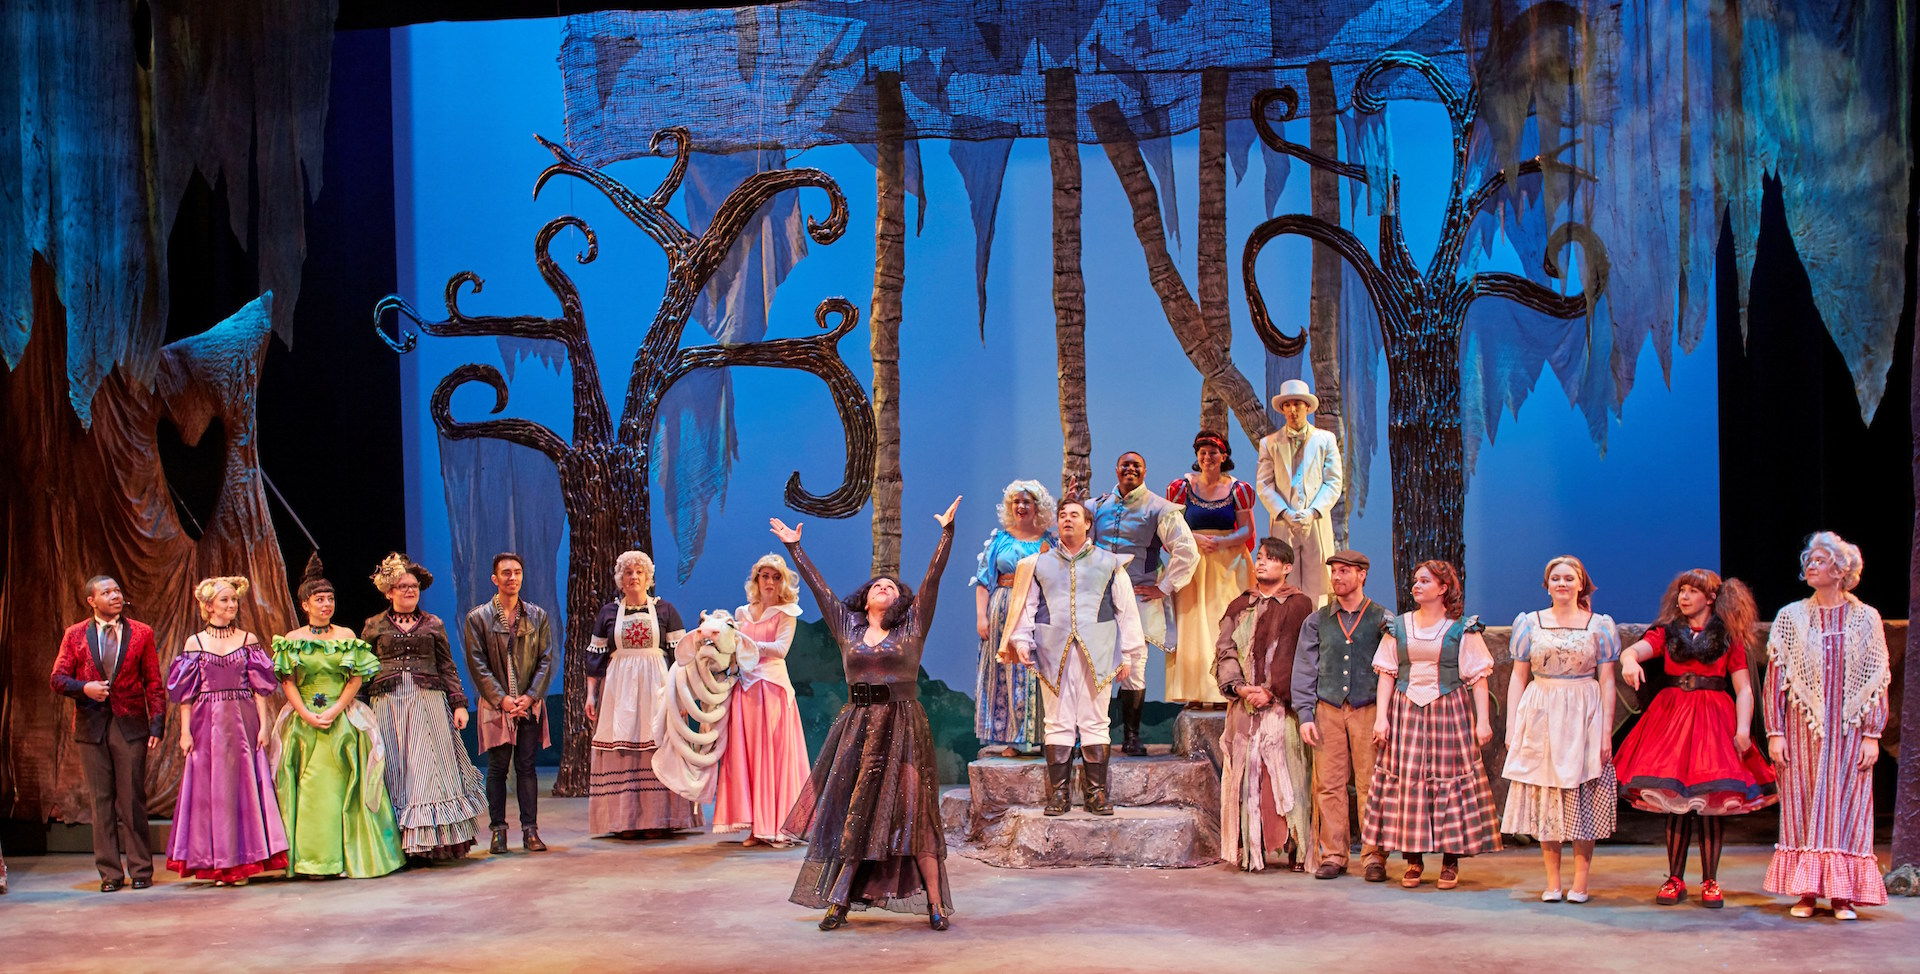 Cast of Into the Woods on stage